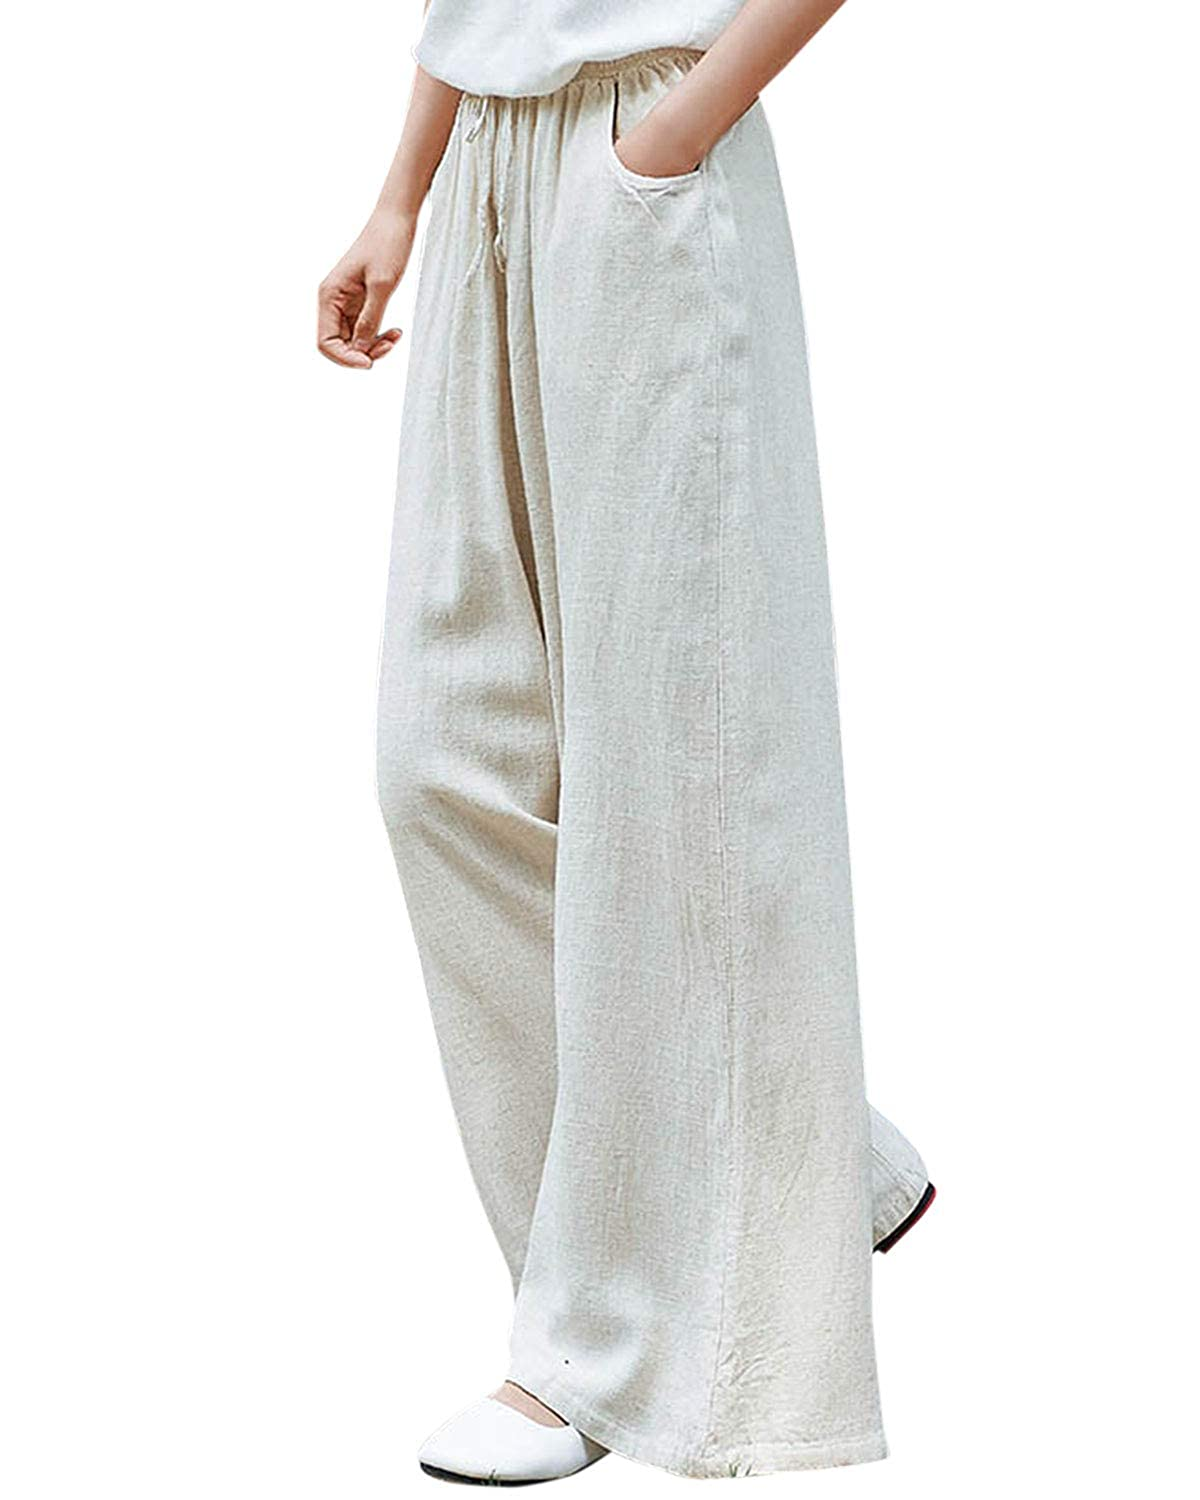 baby coupon code discount price Aeneontrue Women's Cotton Linen Wide Leg Pants Casual High Waist Drawstring  Trousers with Pockets